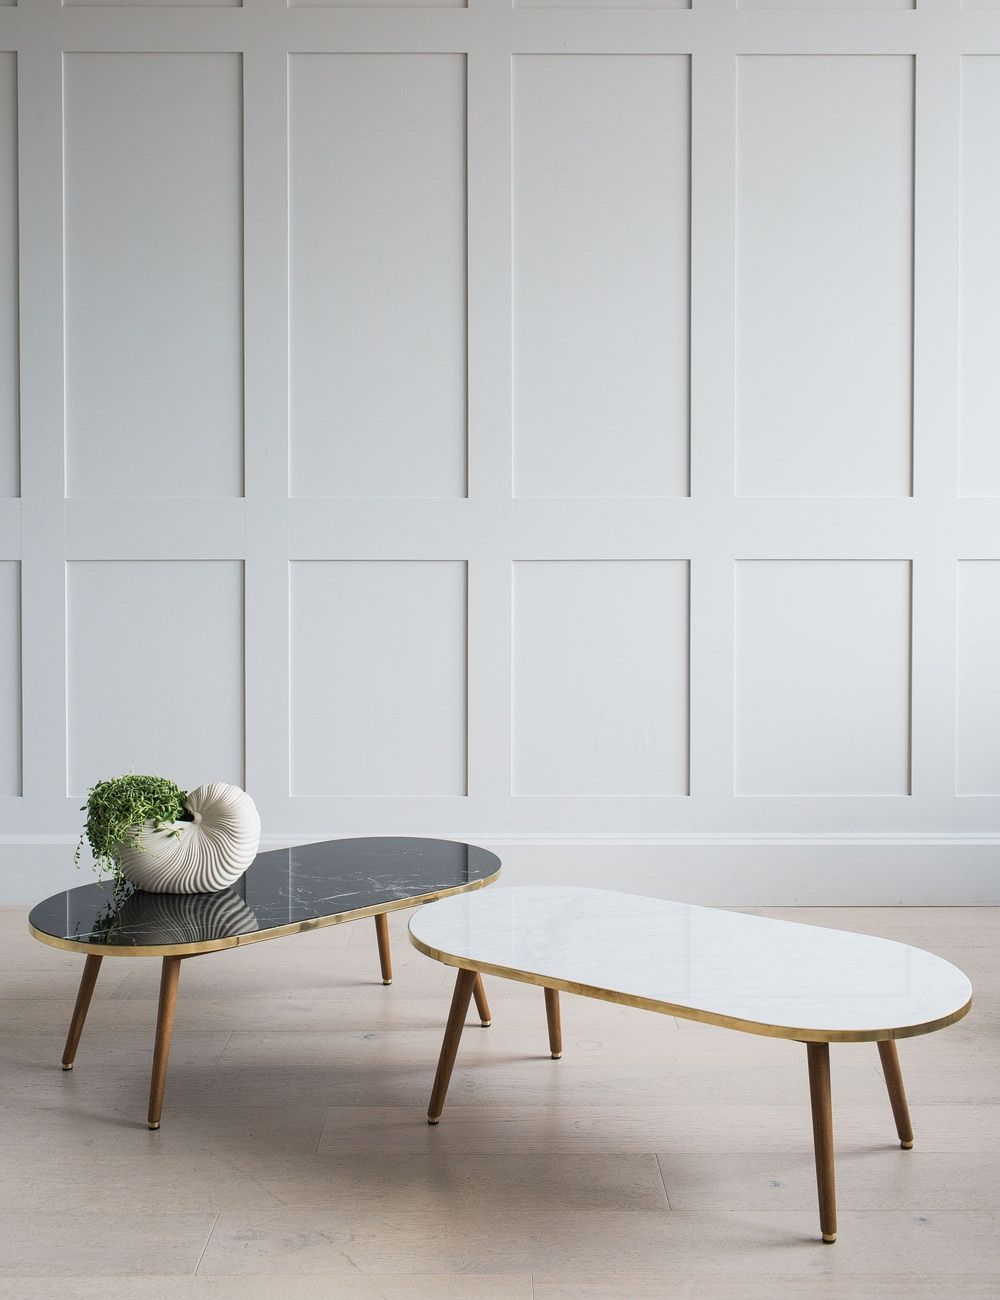 Oval Marble Wood Coffee Table White Di 2020 [ 1300 x 1000 Pixel ]